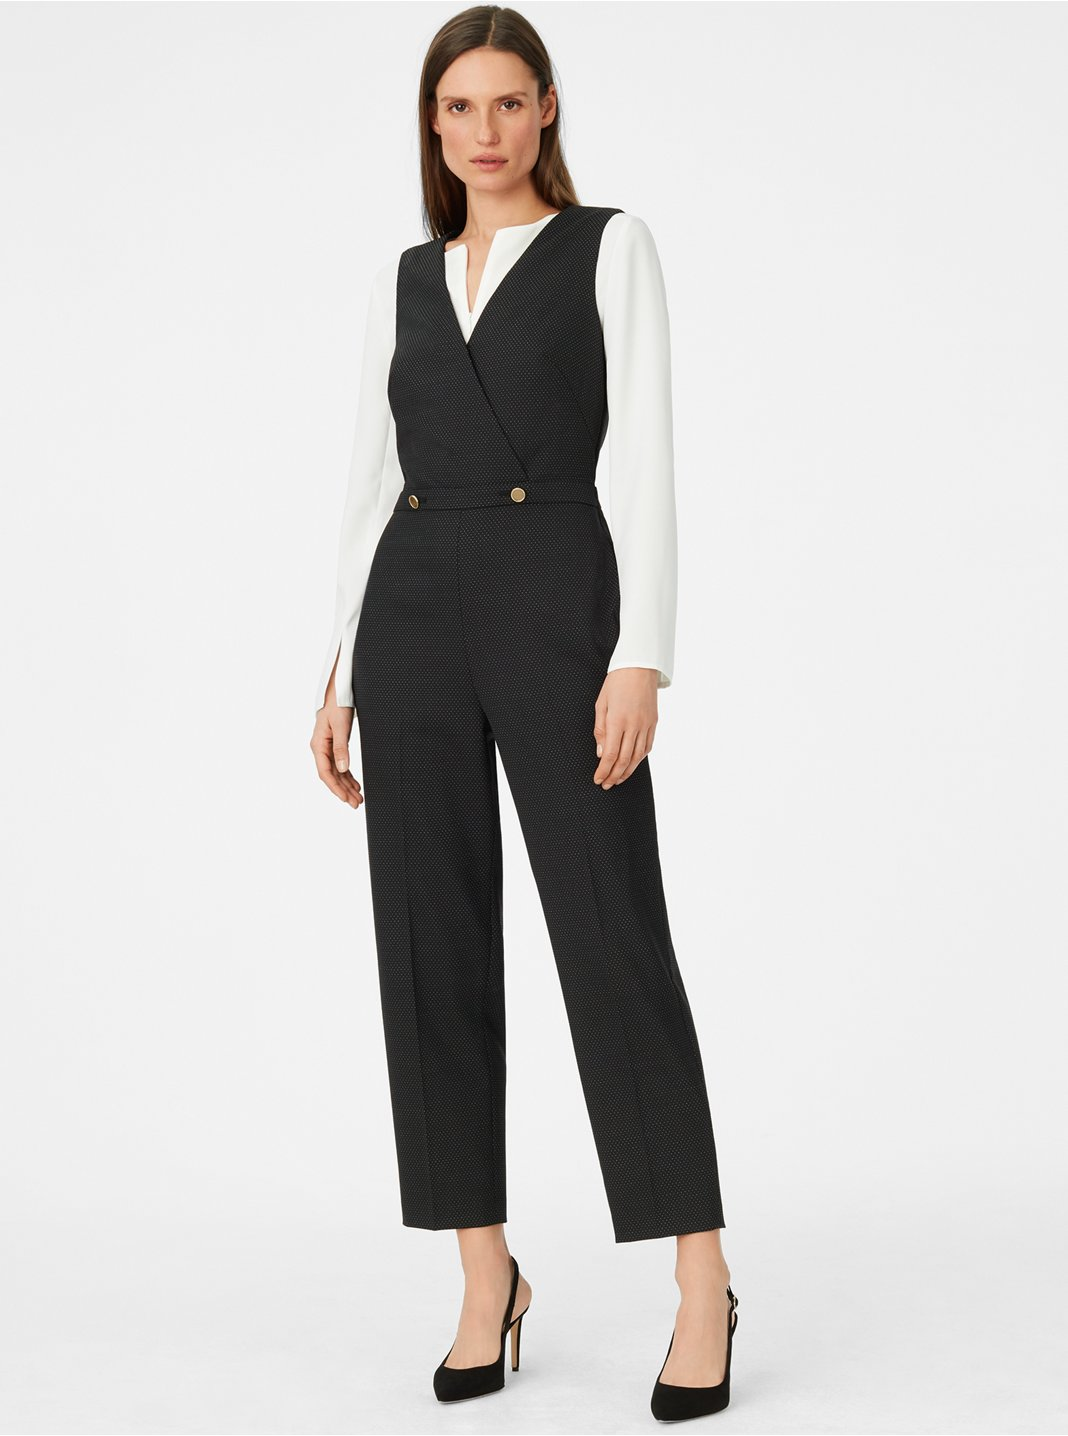 클럽 모나코 Dorotheah 핀 도트 점프수트 Club Monaco Dorotheah Pin-Dot Jumpsuit,Black/White